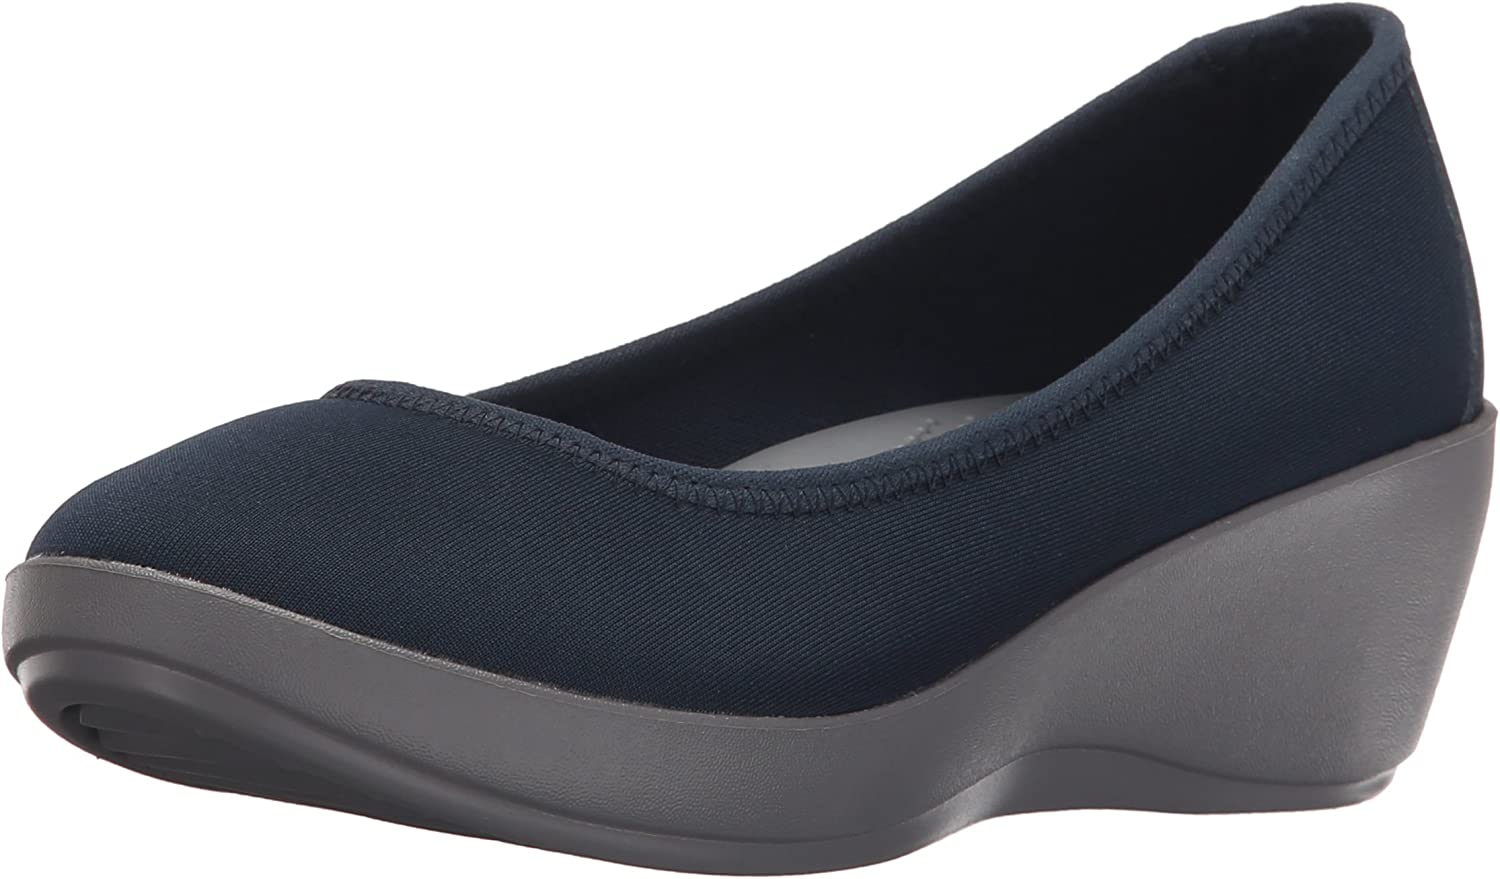 Crocs Women's Busy Day Stretch Ballet Wedge Flat